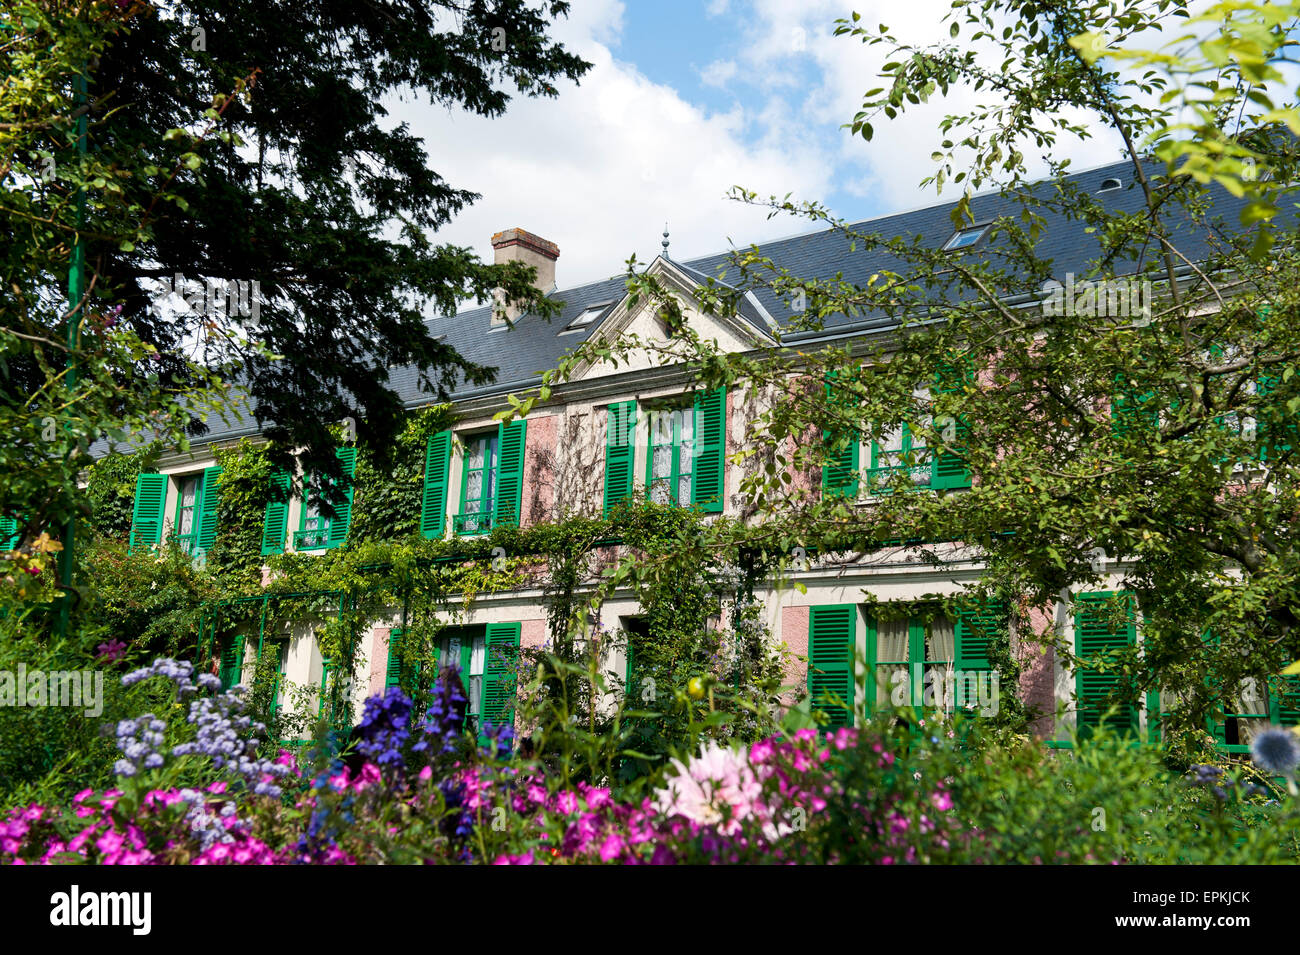 Claude Monet House in Giverny departement eure france europe Stock Photo